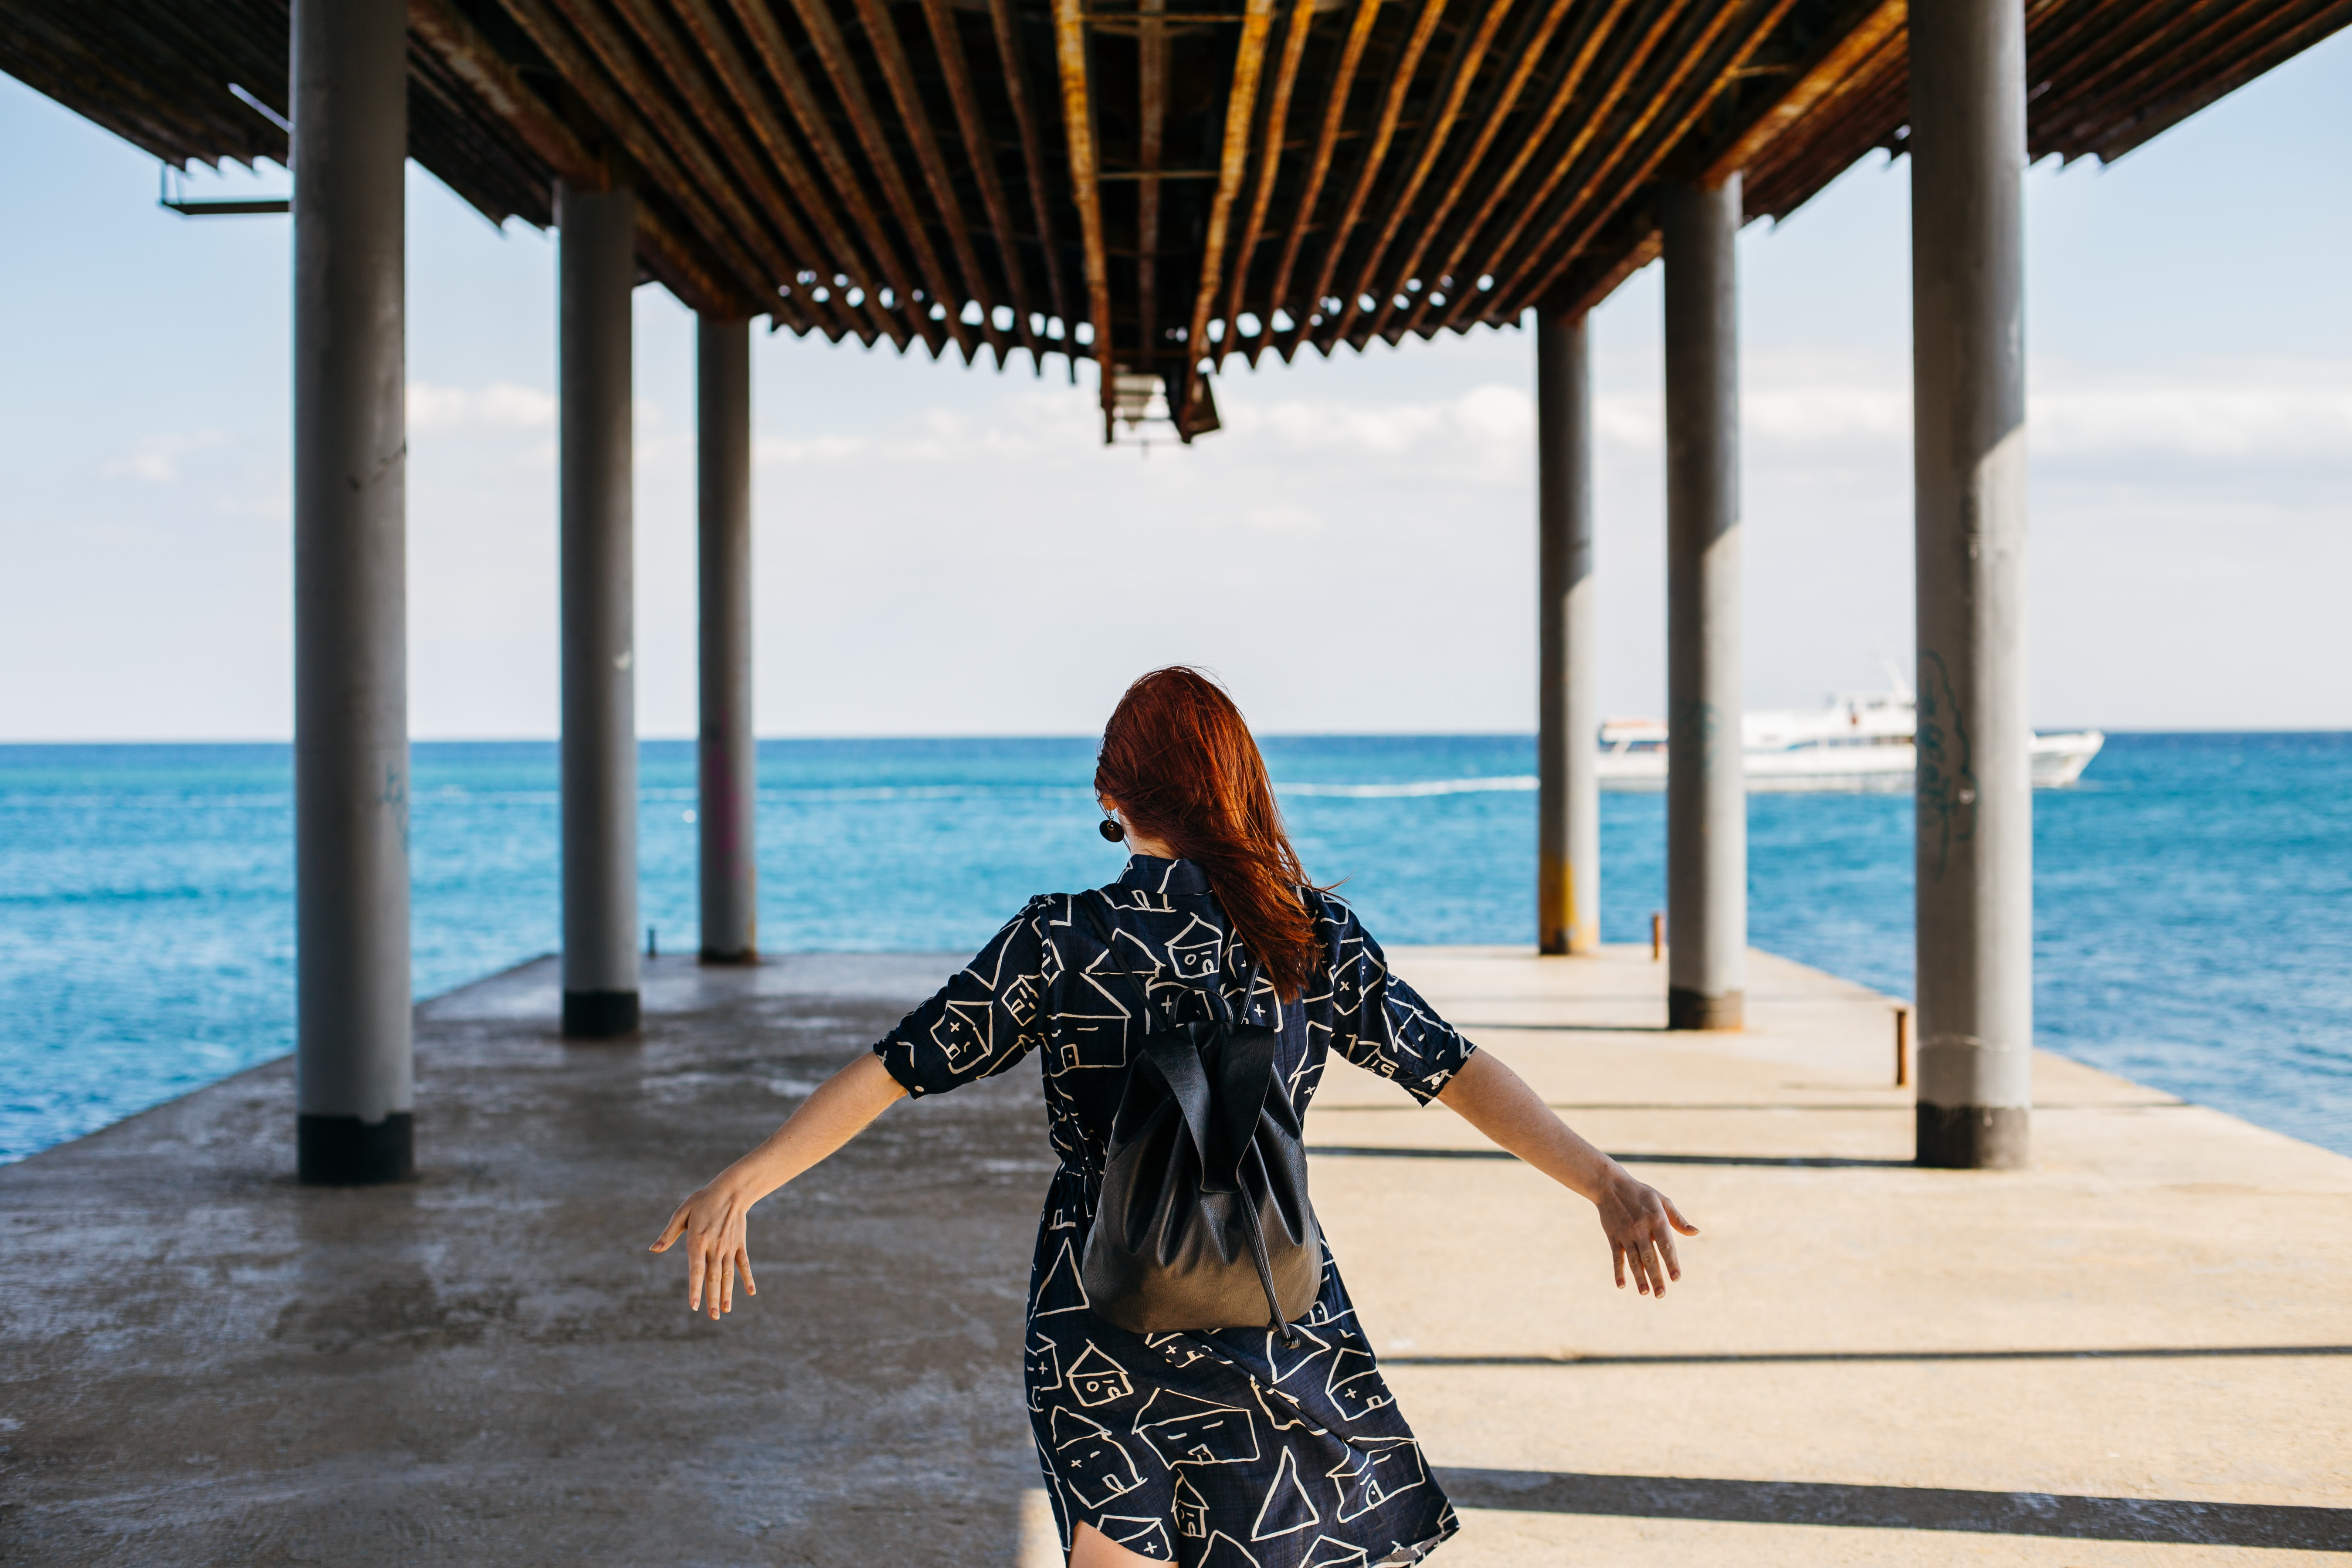 A woman in a patterned dress outstretches her arm on a dock by the ocean